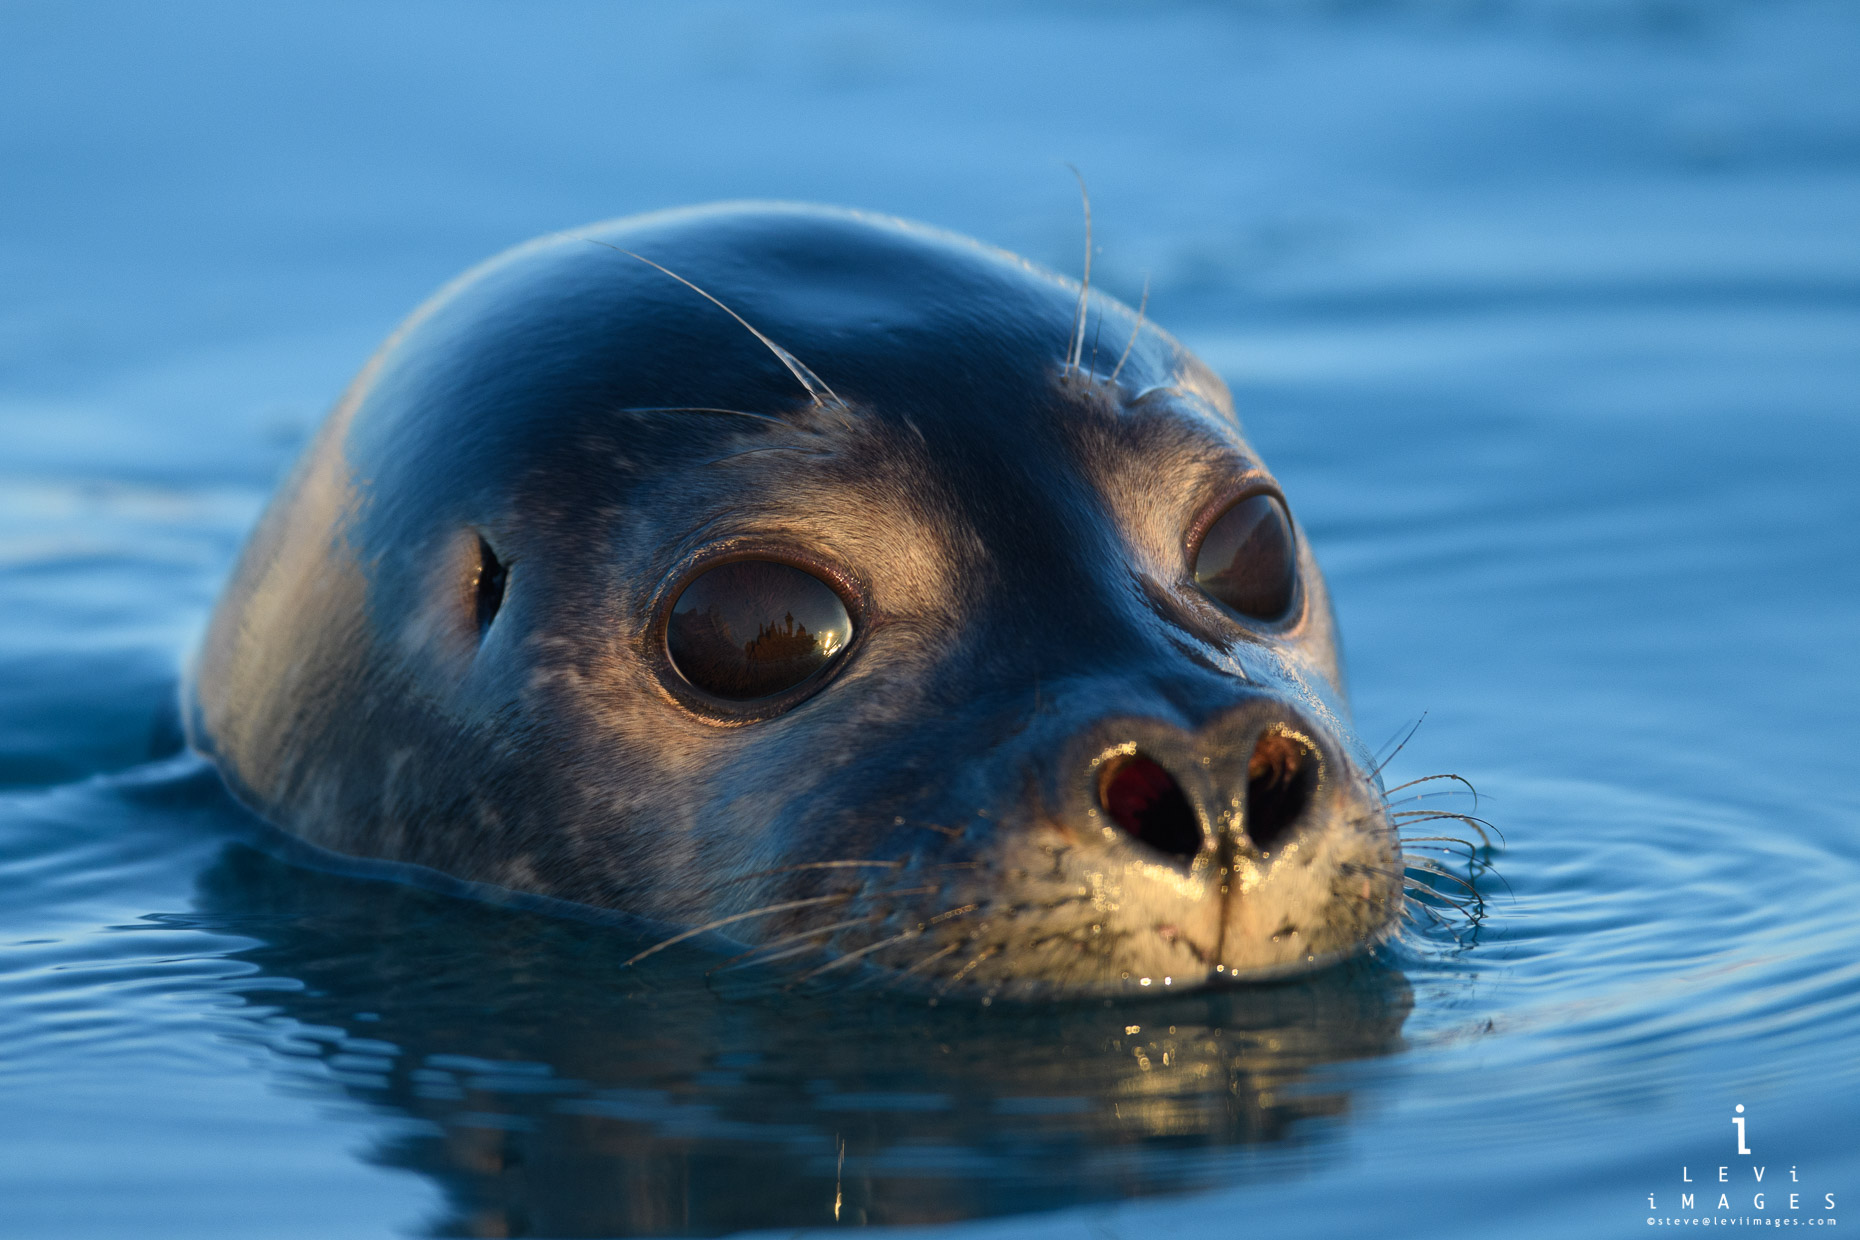 Harbor seal (Phoca vitulina) portrait at sunset close-up. Svalbard, Norway